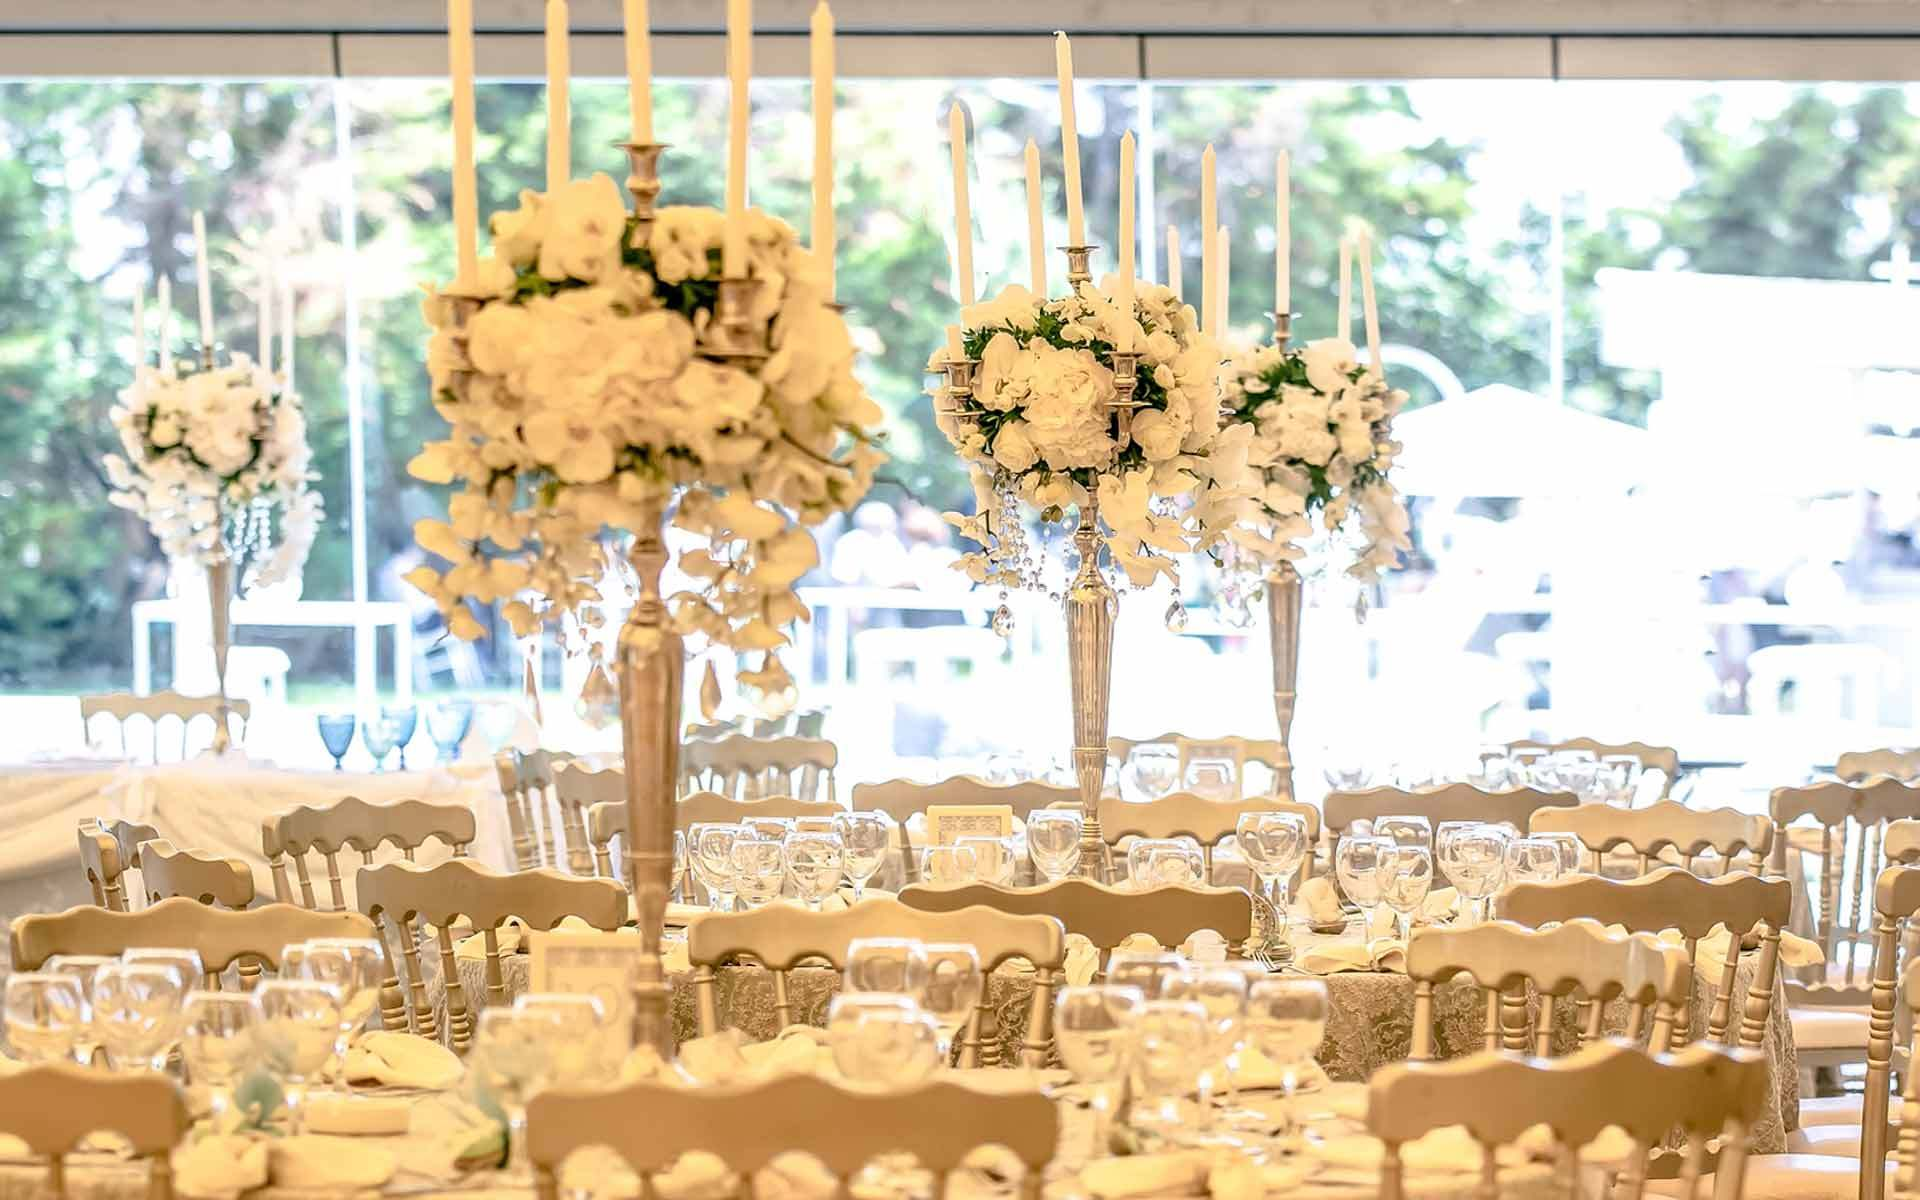 Extravagant-Dream-Wedding-candelabras-with-crystals-and-white-orchids